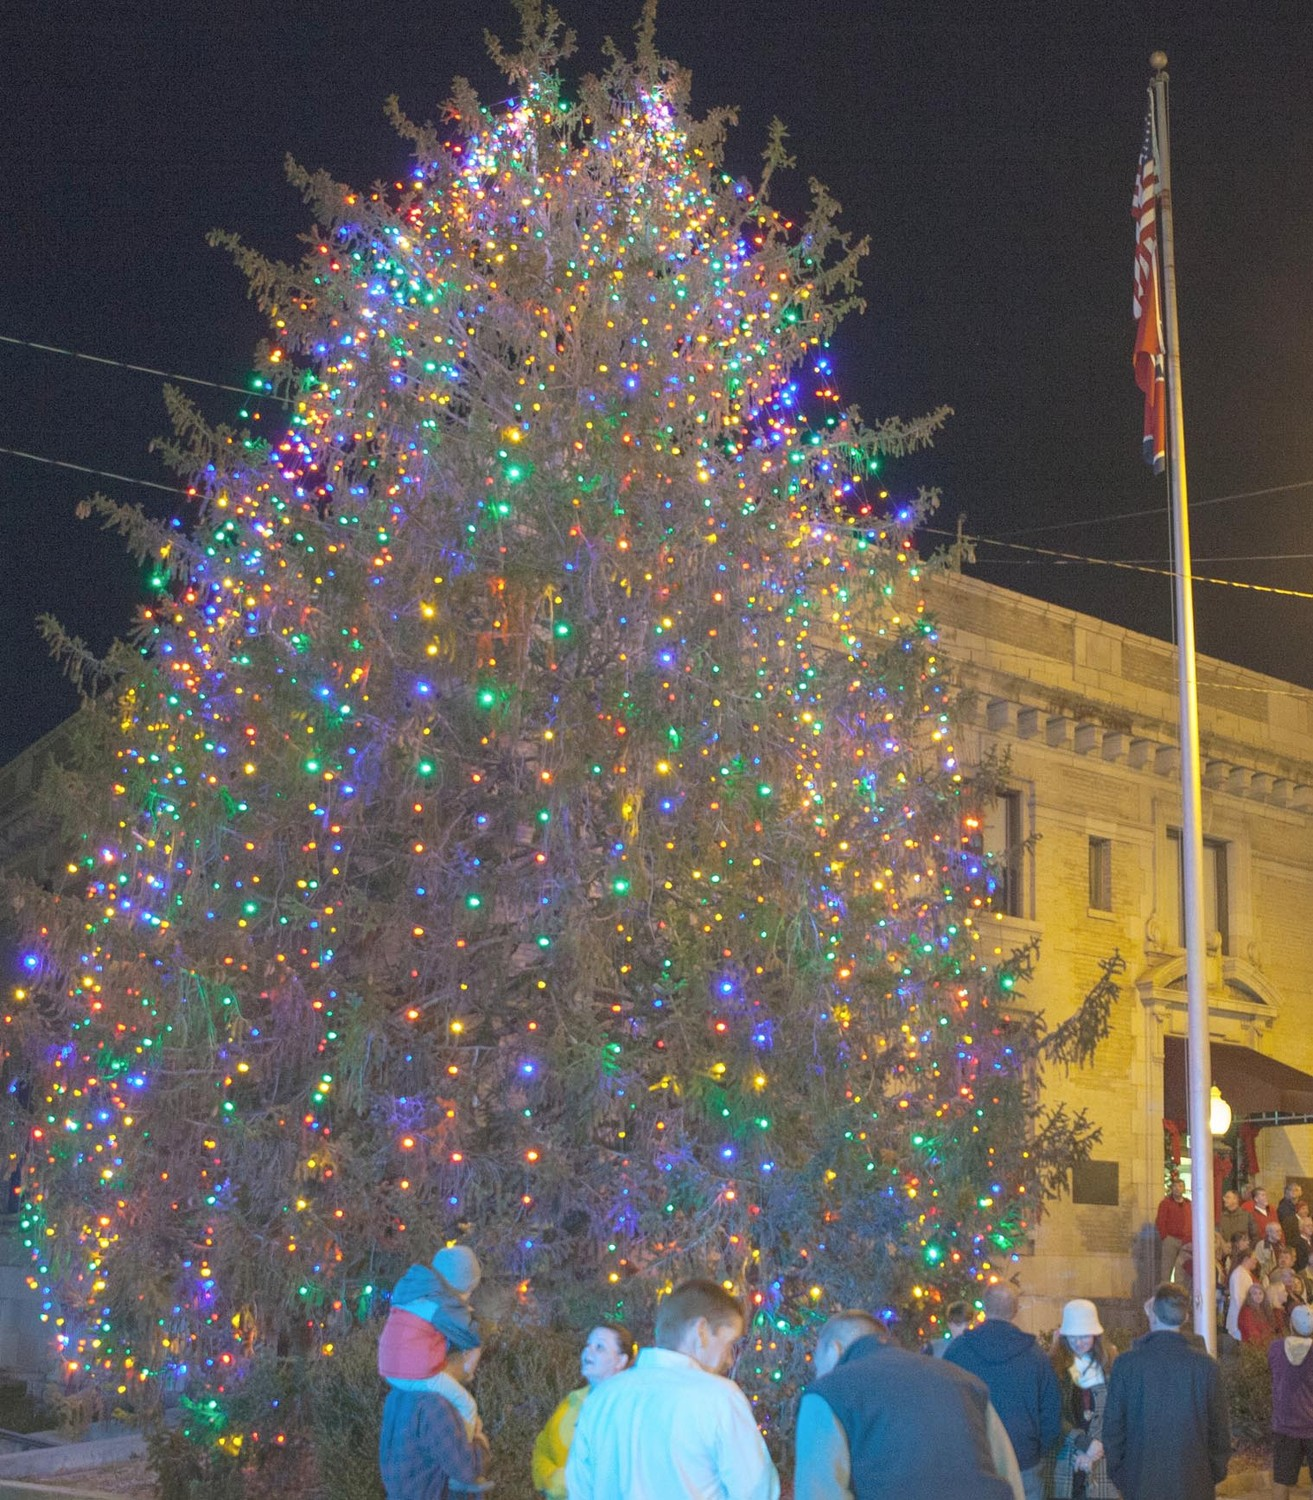 THIS YEAR'S CHRISTMAS TREE lights have all been replaced with LED bulbs in an effort to conserve energy.